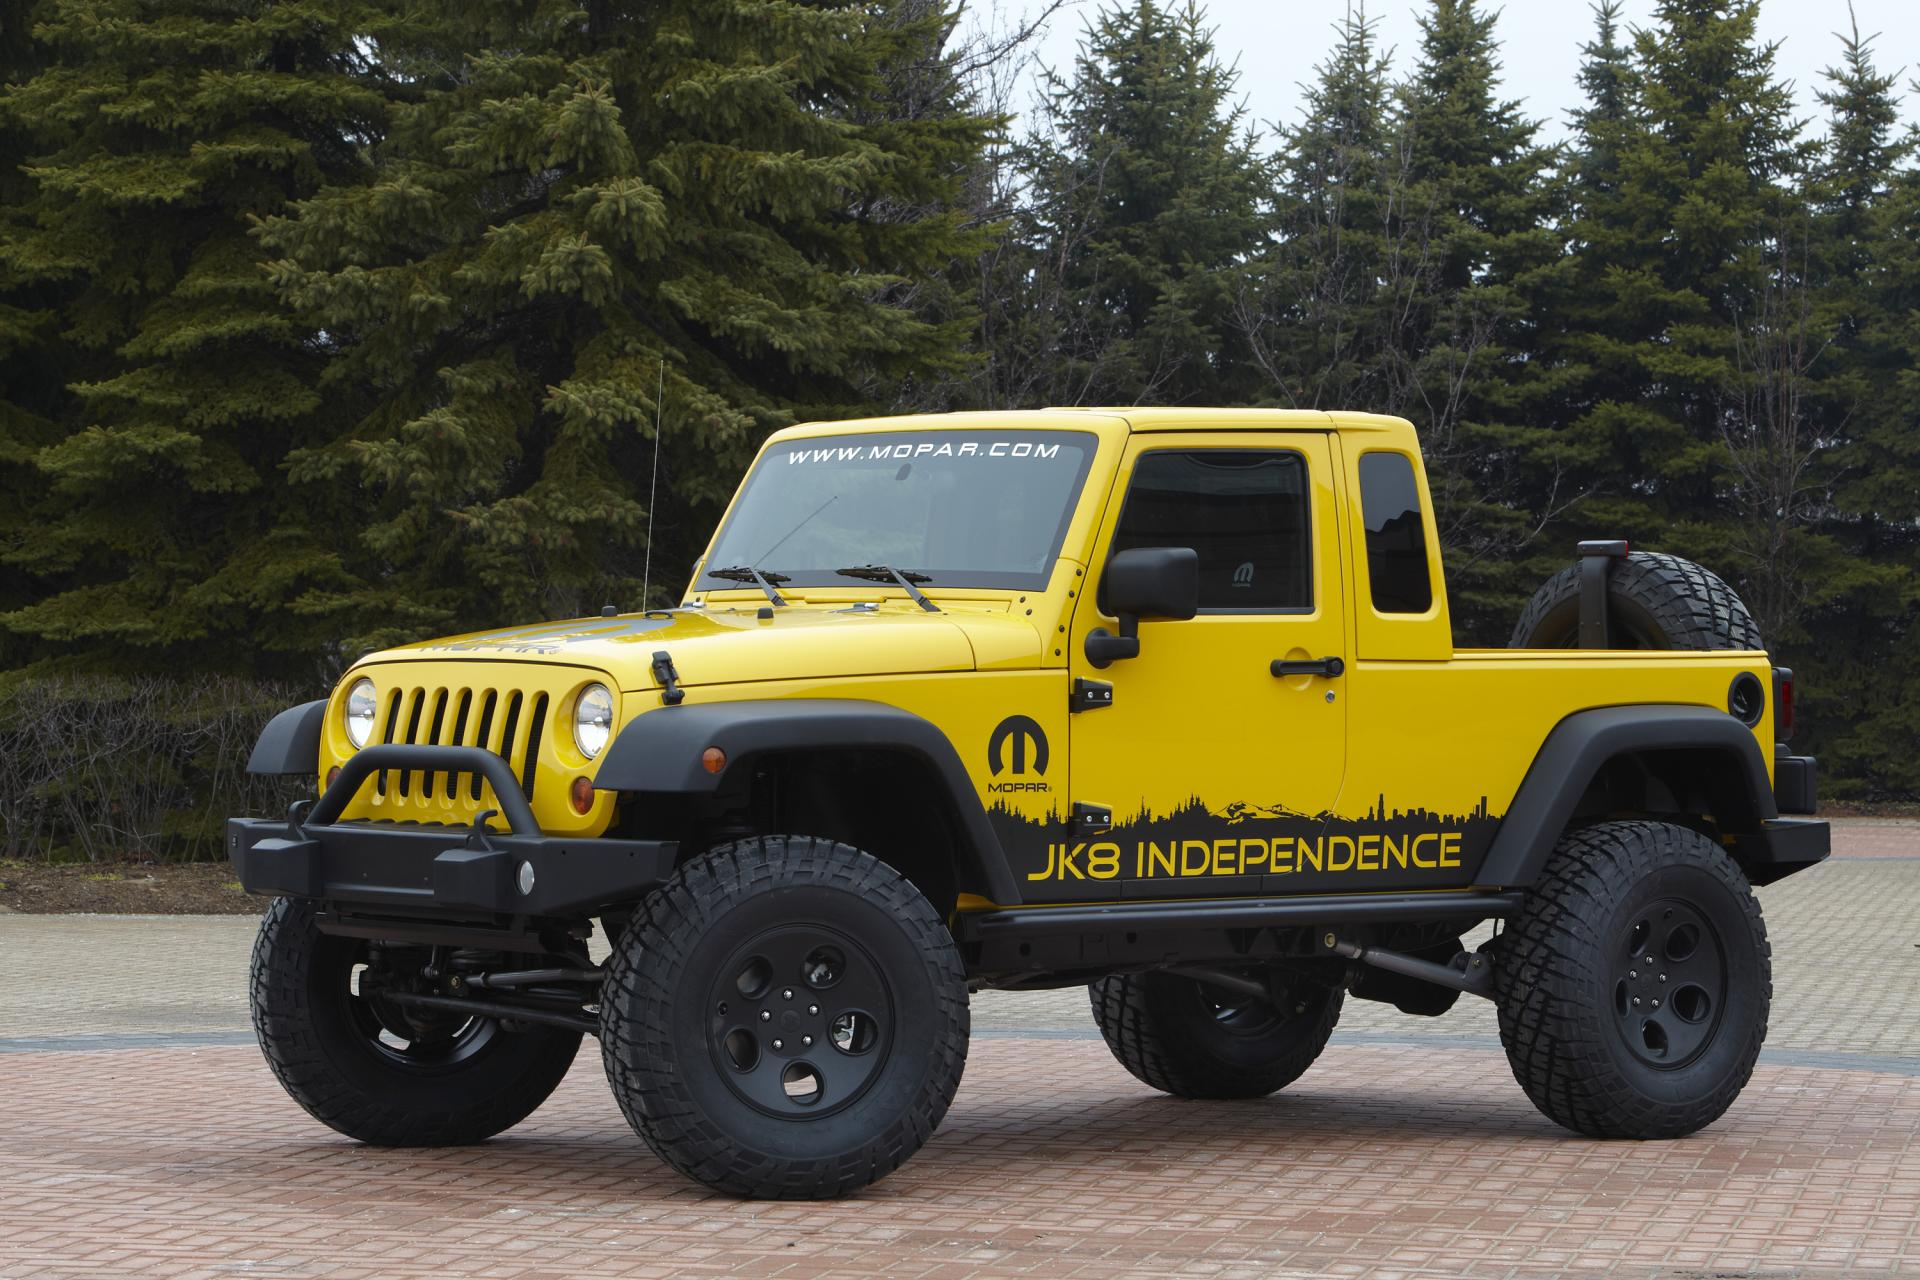 2011 Jeep Wrangler Unlimited Technical Specifications and ...